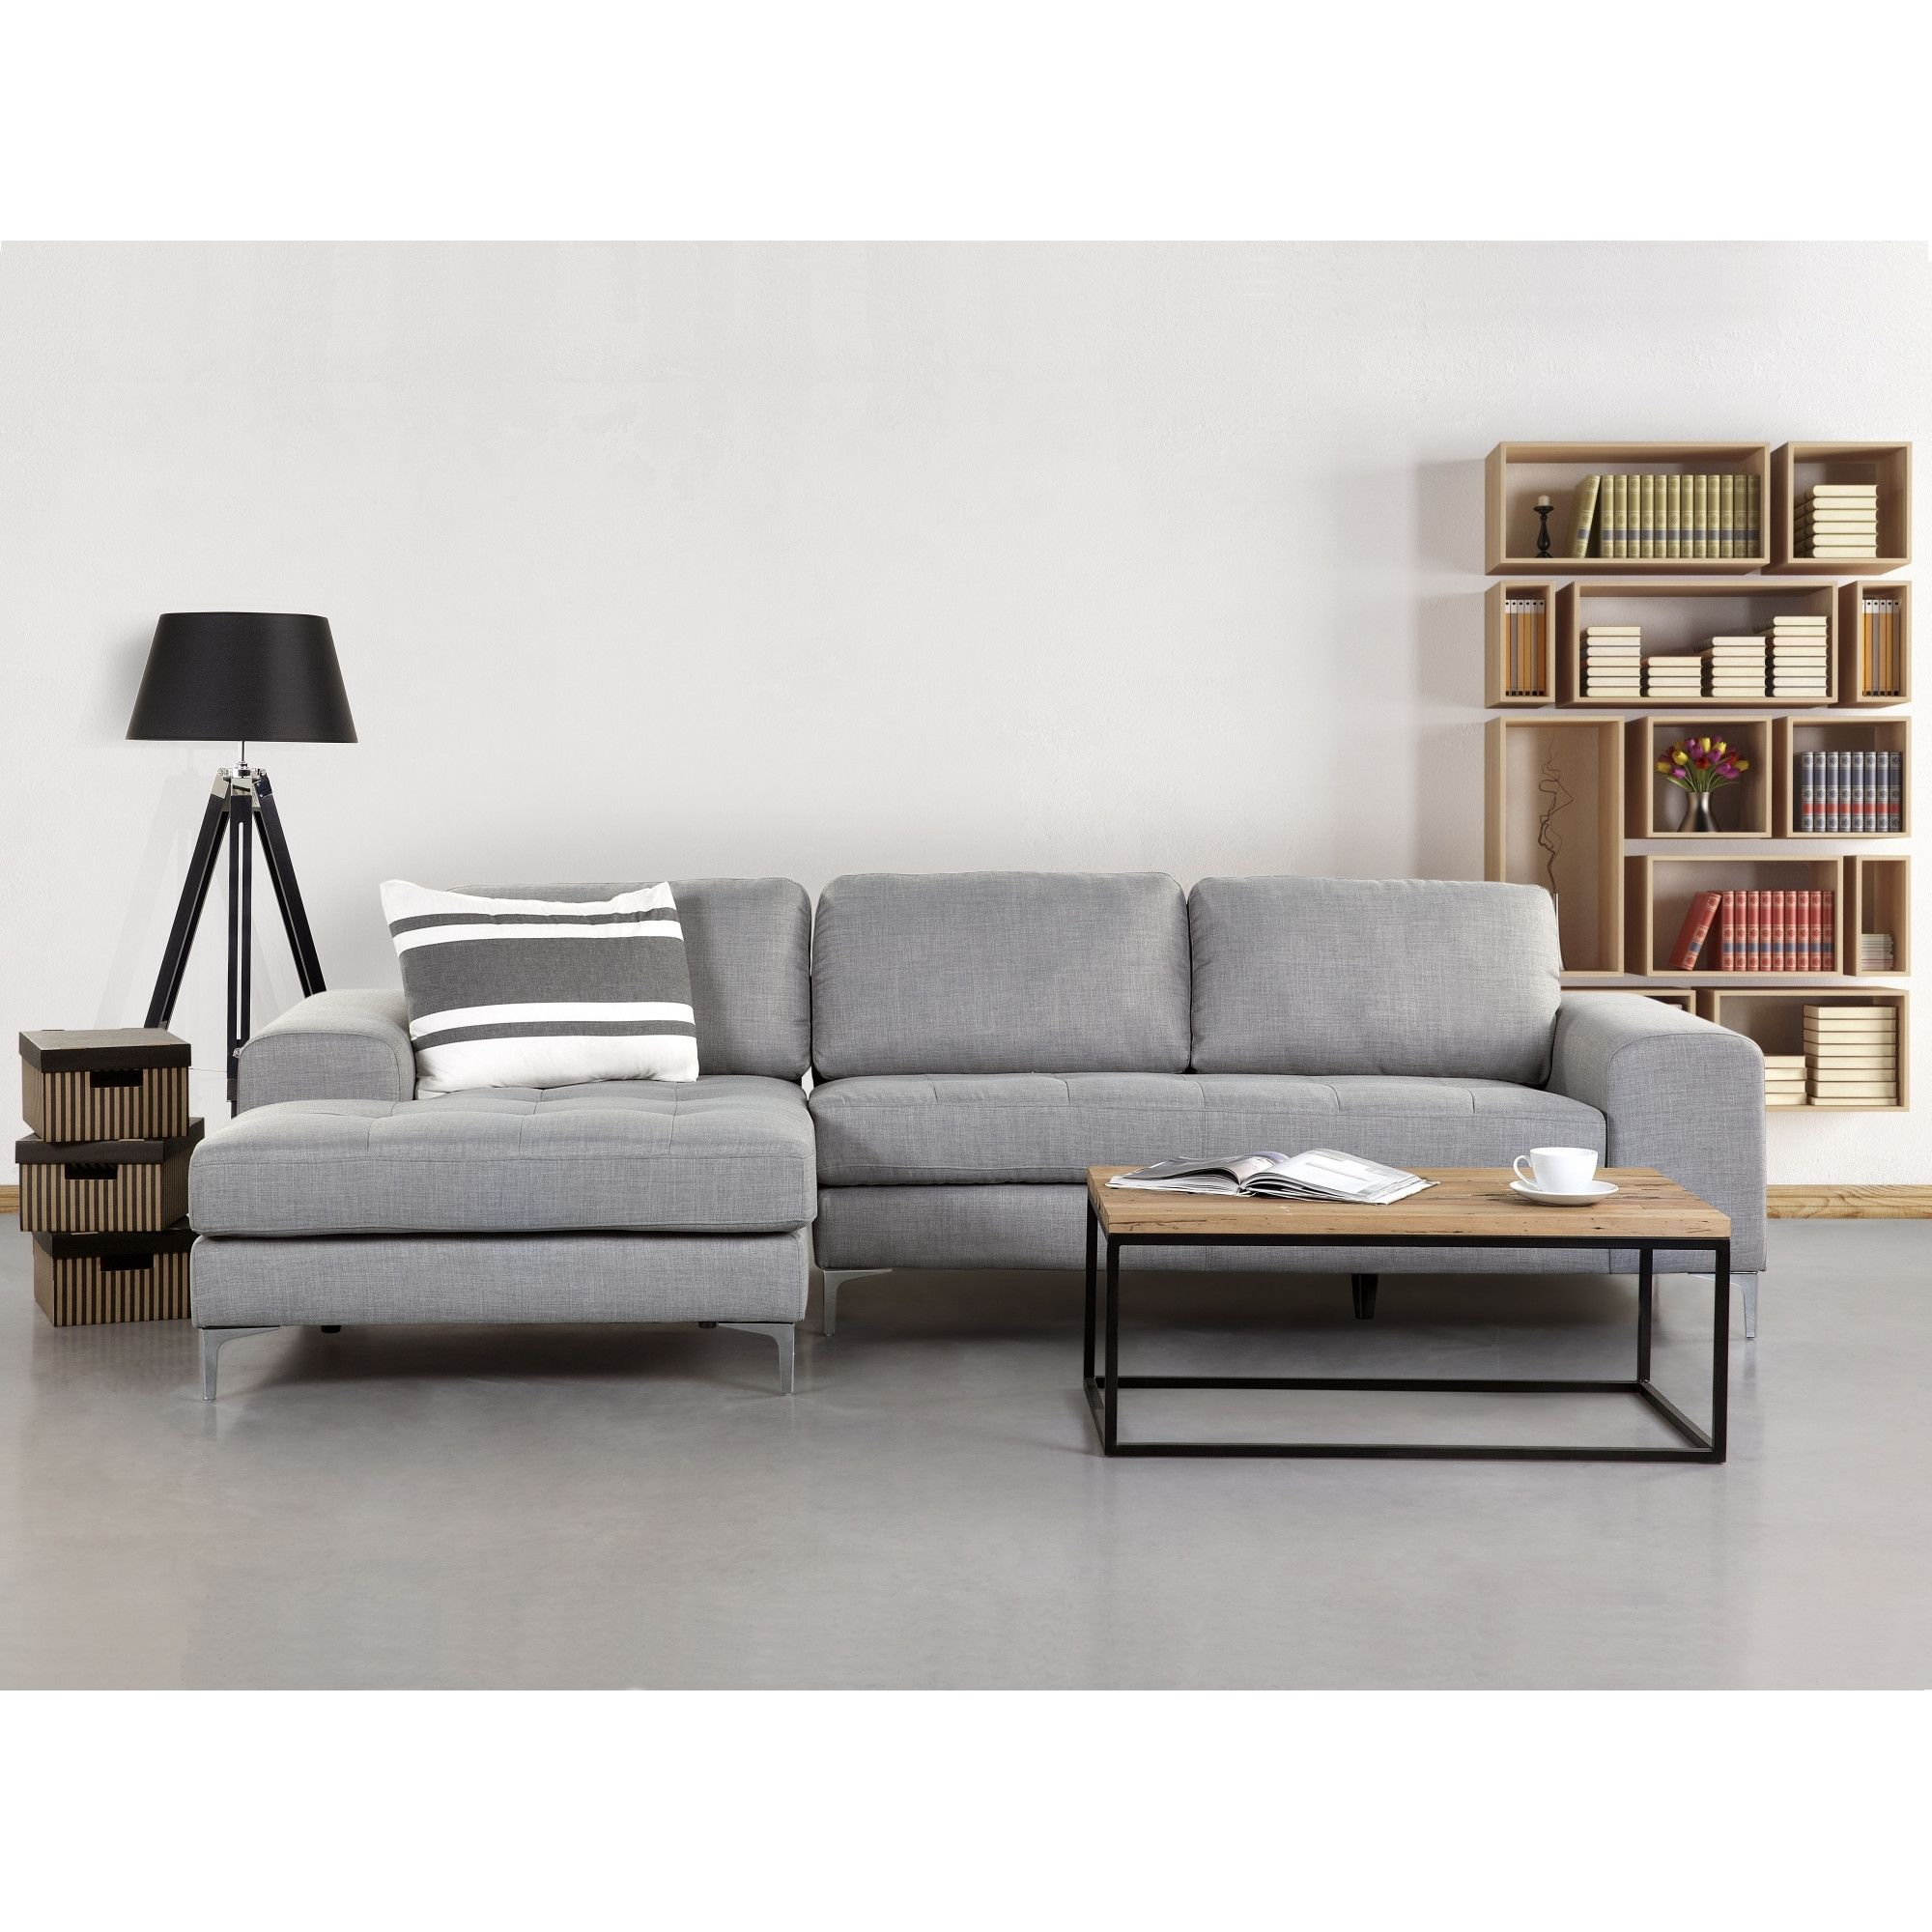 Wayfair Co Uk For Your Rula Corner Sofa Find The Best Deals